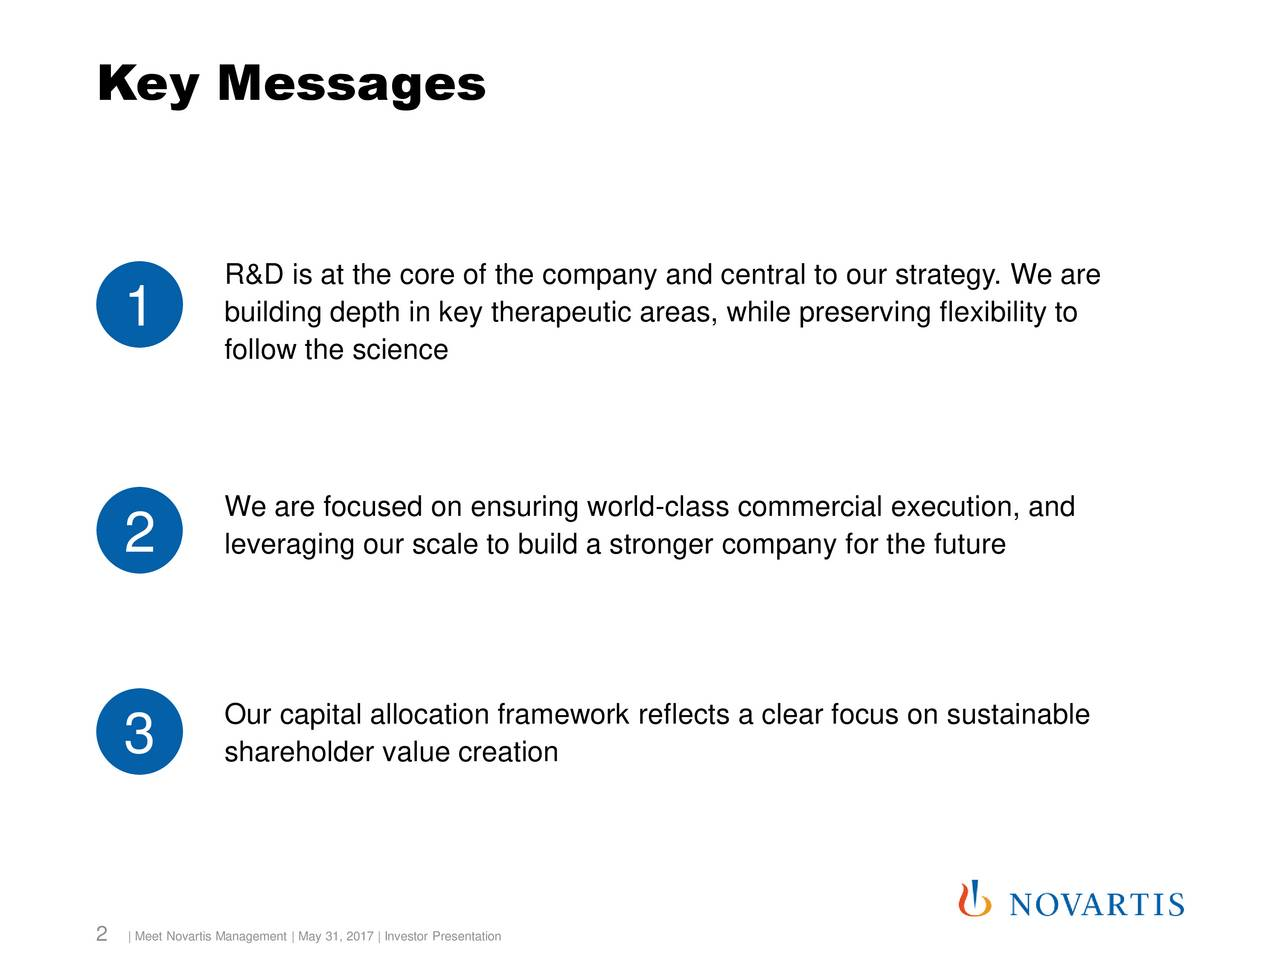 R&D is at the core of the company and central to our strategy. We are 1 building depth in key therapeutic areas, while preserving flexibility to follow the science We are focused on ensuring world-class commercial execution, and 2 leveraging our scale to build a stronger company for the future Our capital allocation framework reflects a clear focus on sustainable 3 shareholder value creation 2 | Meet Novartis Management | May 31, 2017 | Investor Presentation